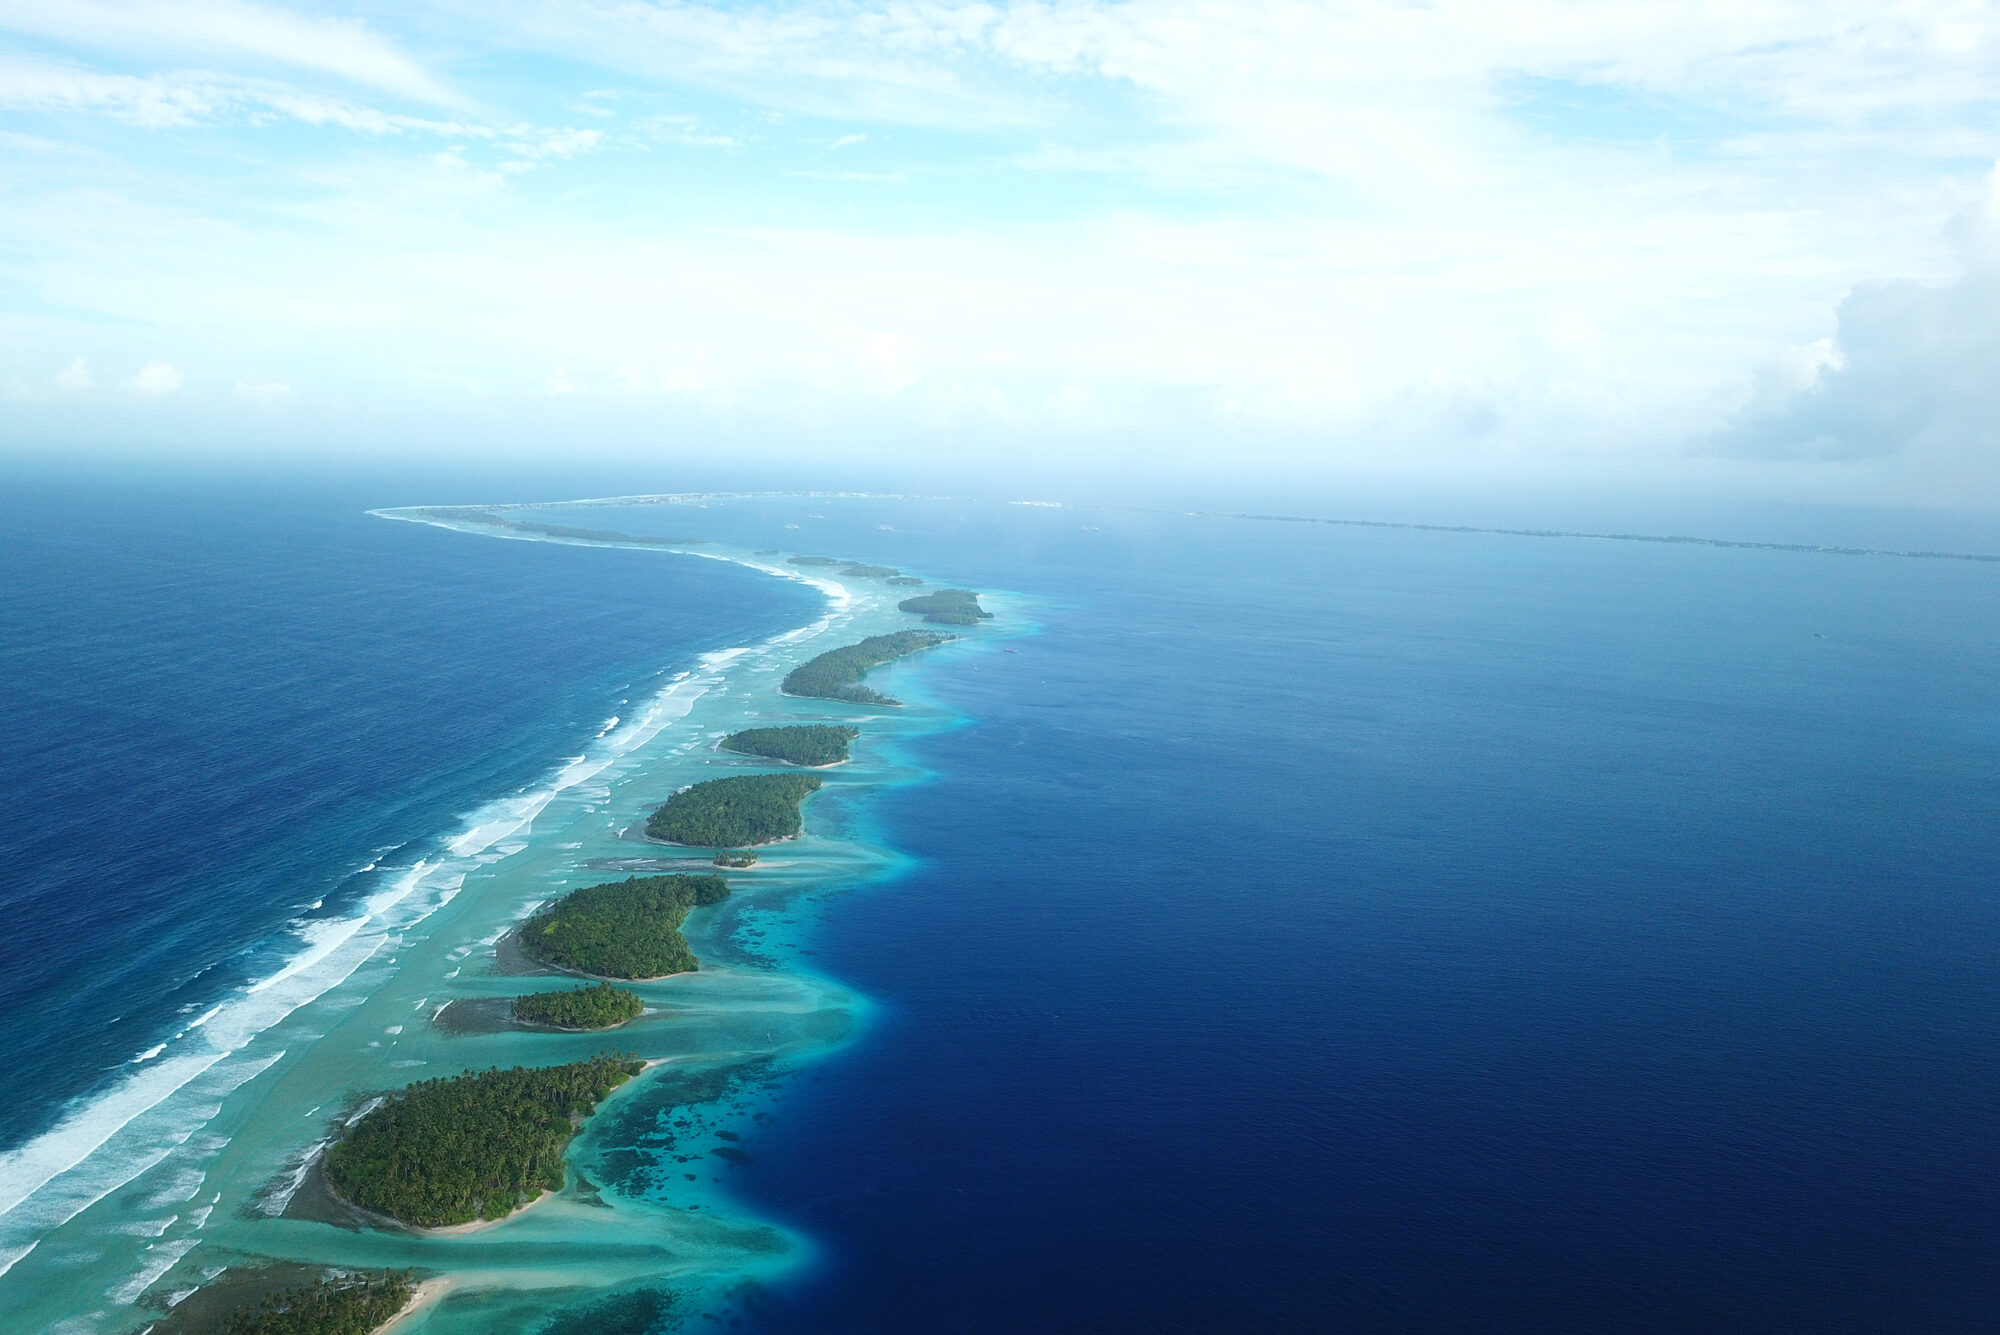 GCF Country Programme and Concept Notes for the Republic of the Marshall Islands